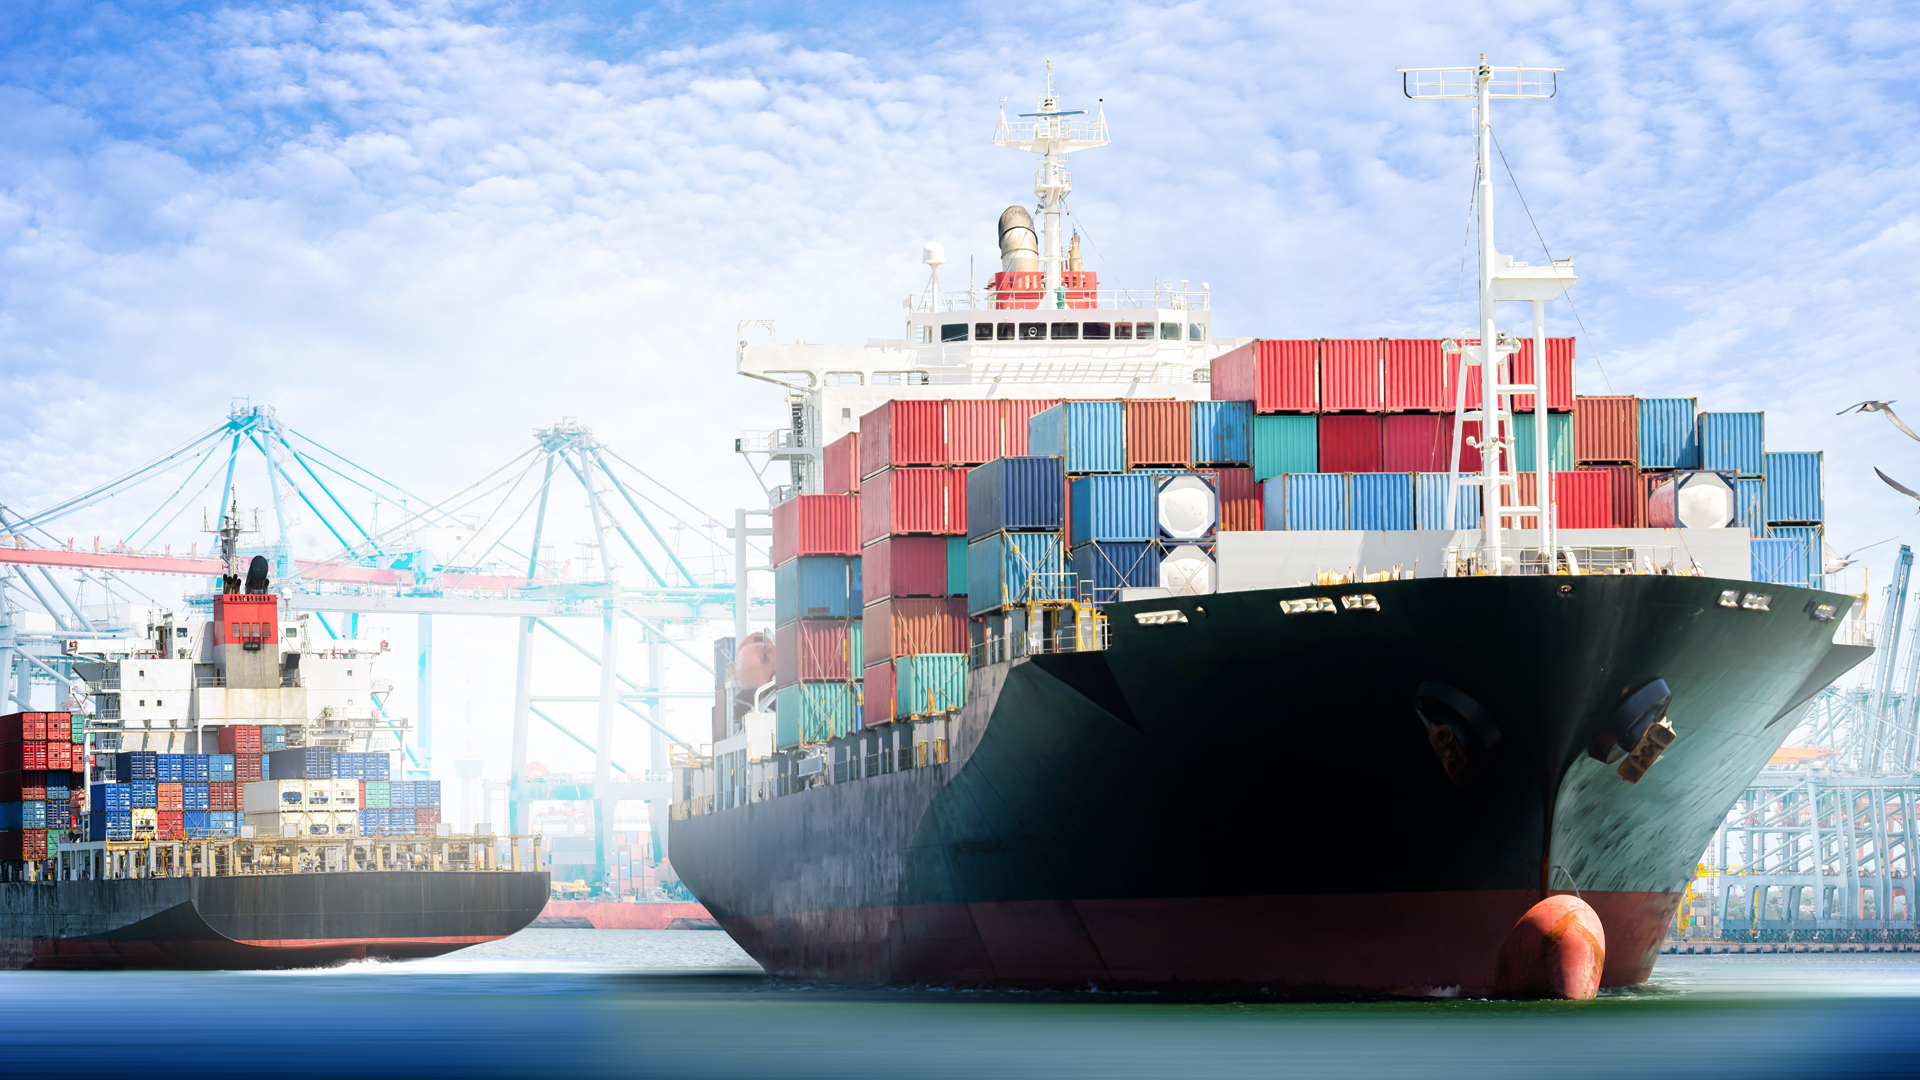 freight-connection-ship1-large